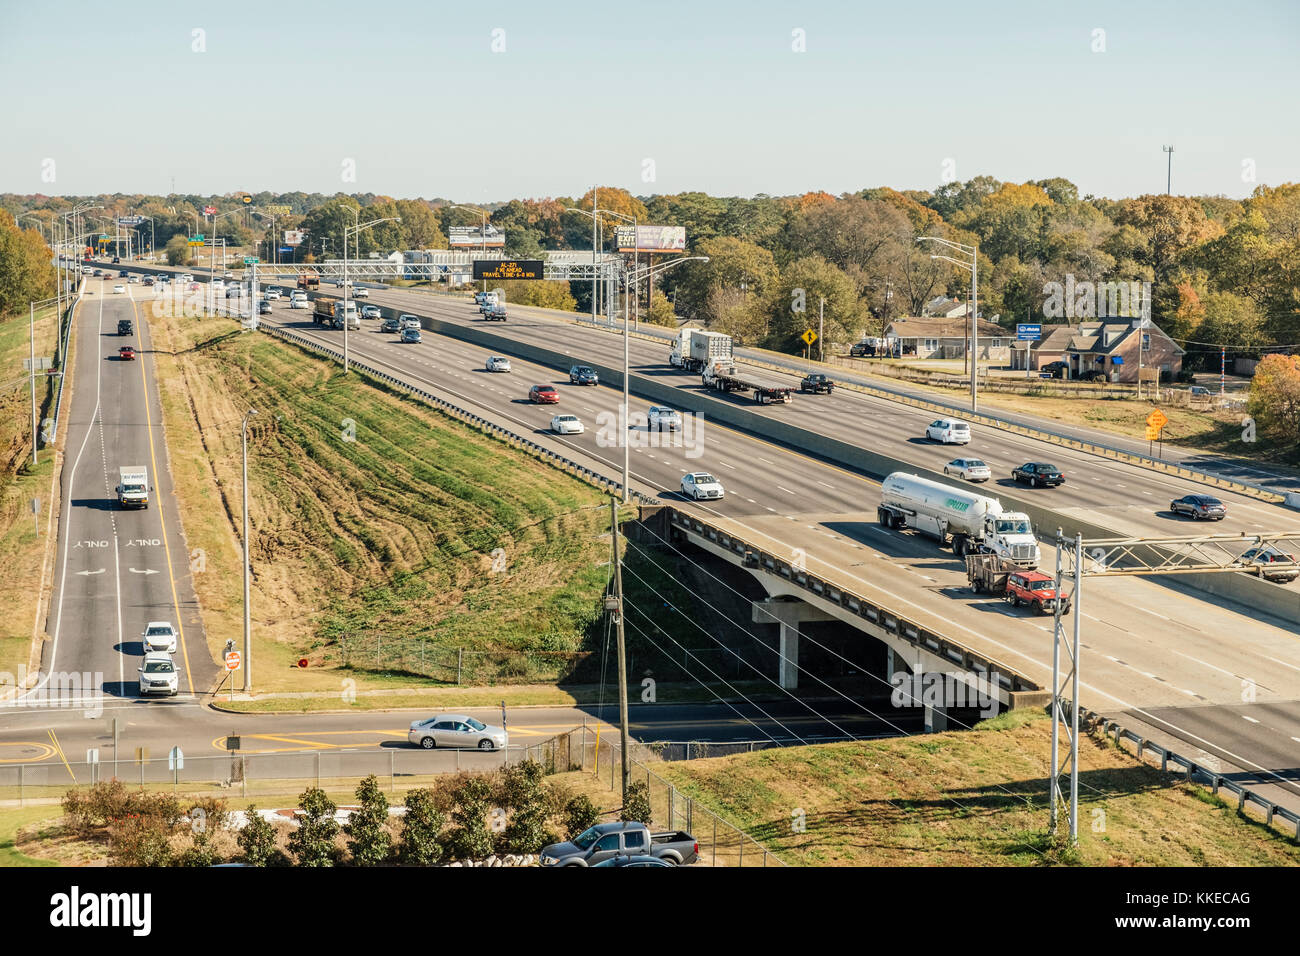 Interstate 85 with midday traffic driving through Montgomery Alabama USA, with a long exit ramp and a surface street - Stock Image